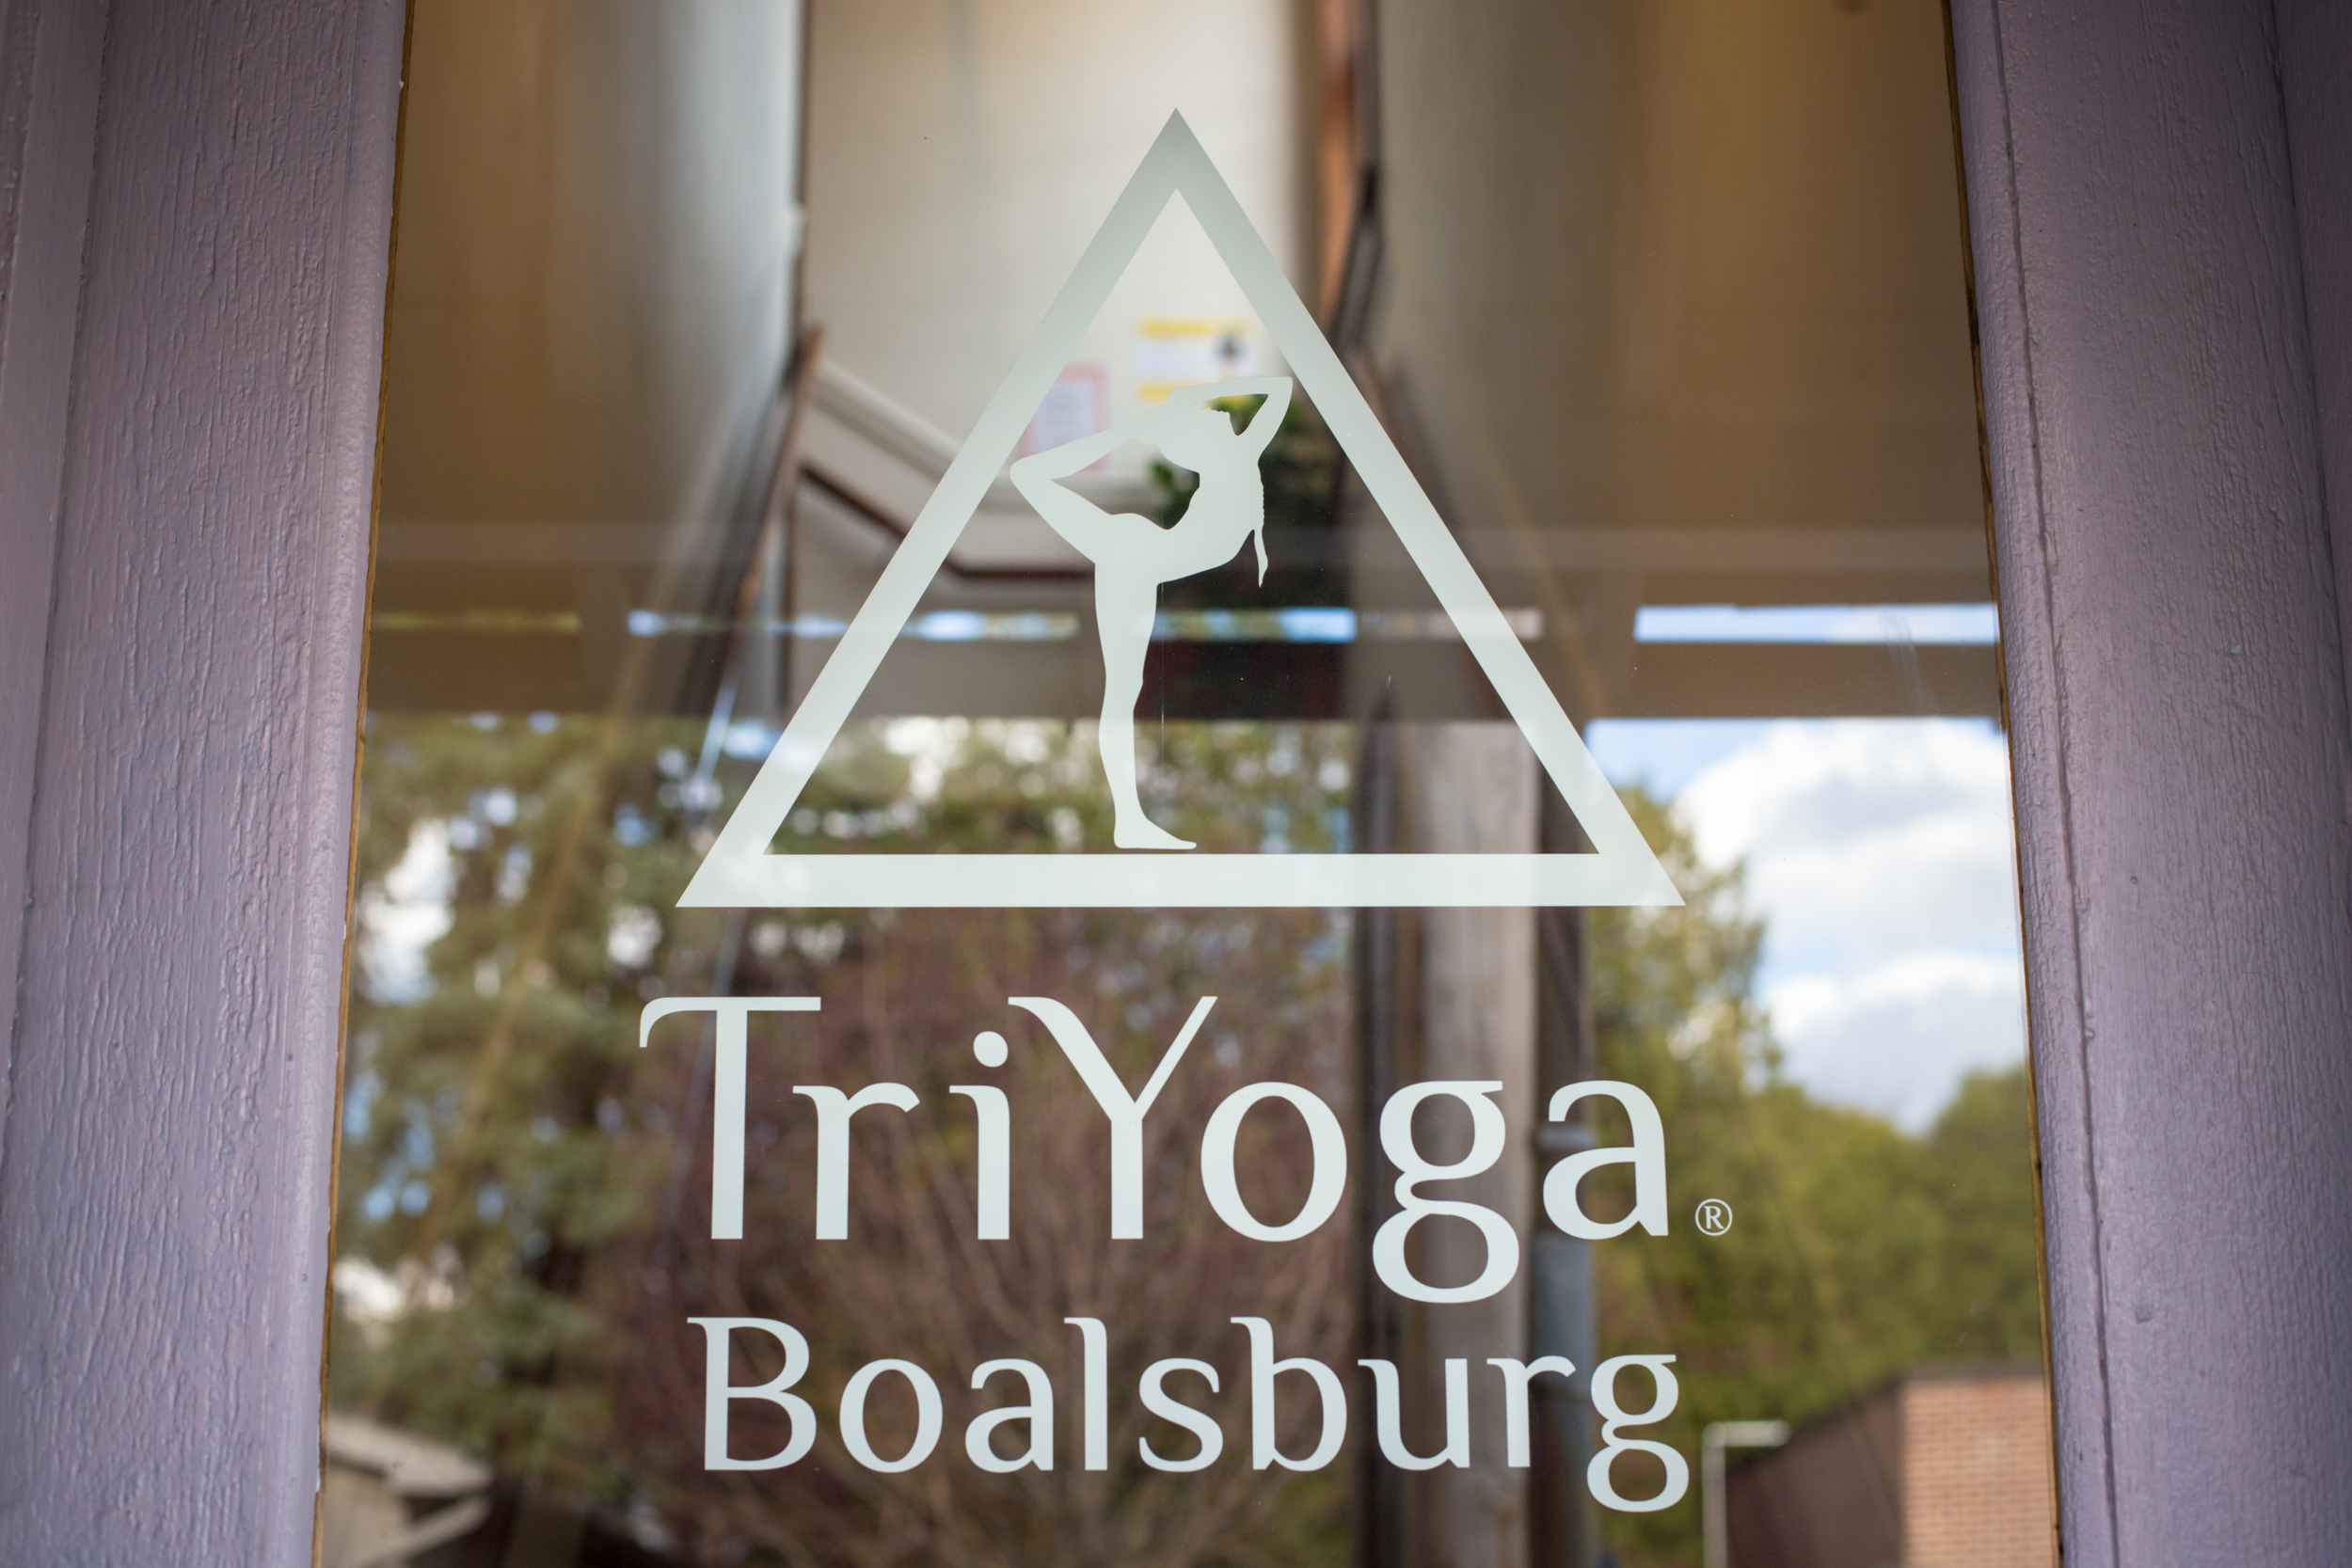 92 // 366 Love seeing my logotype on the TriYoga emblem :D